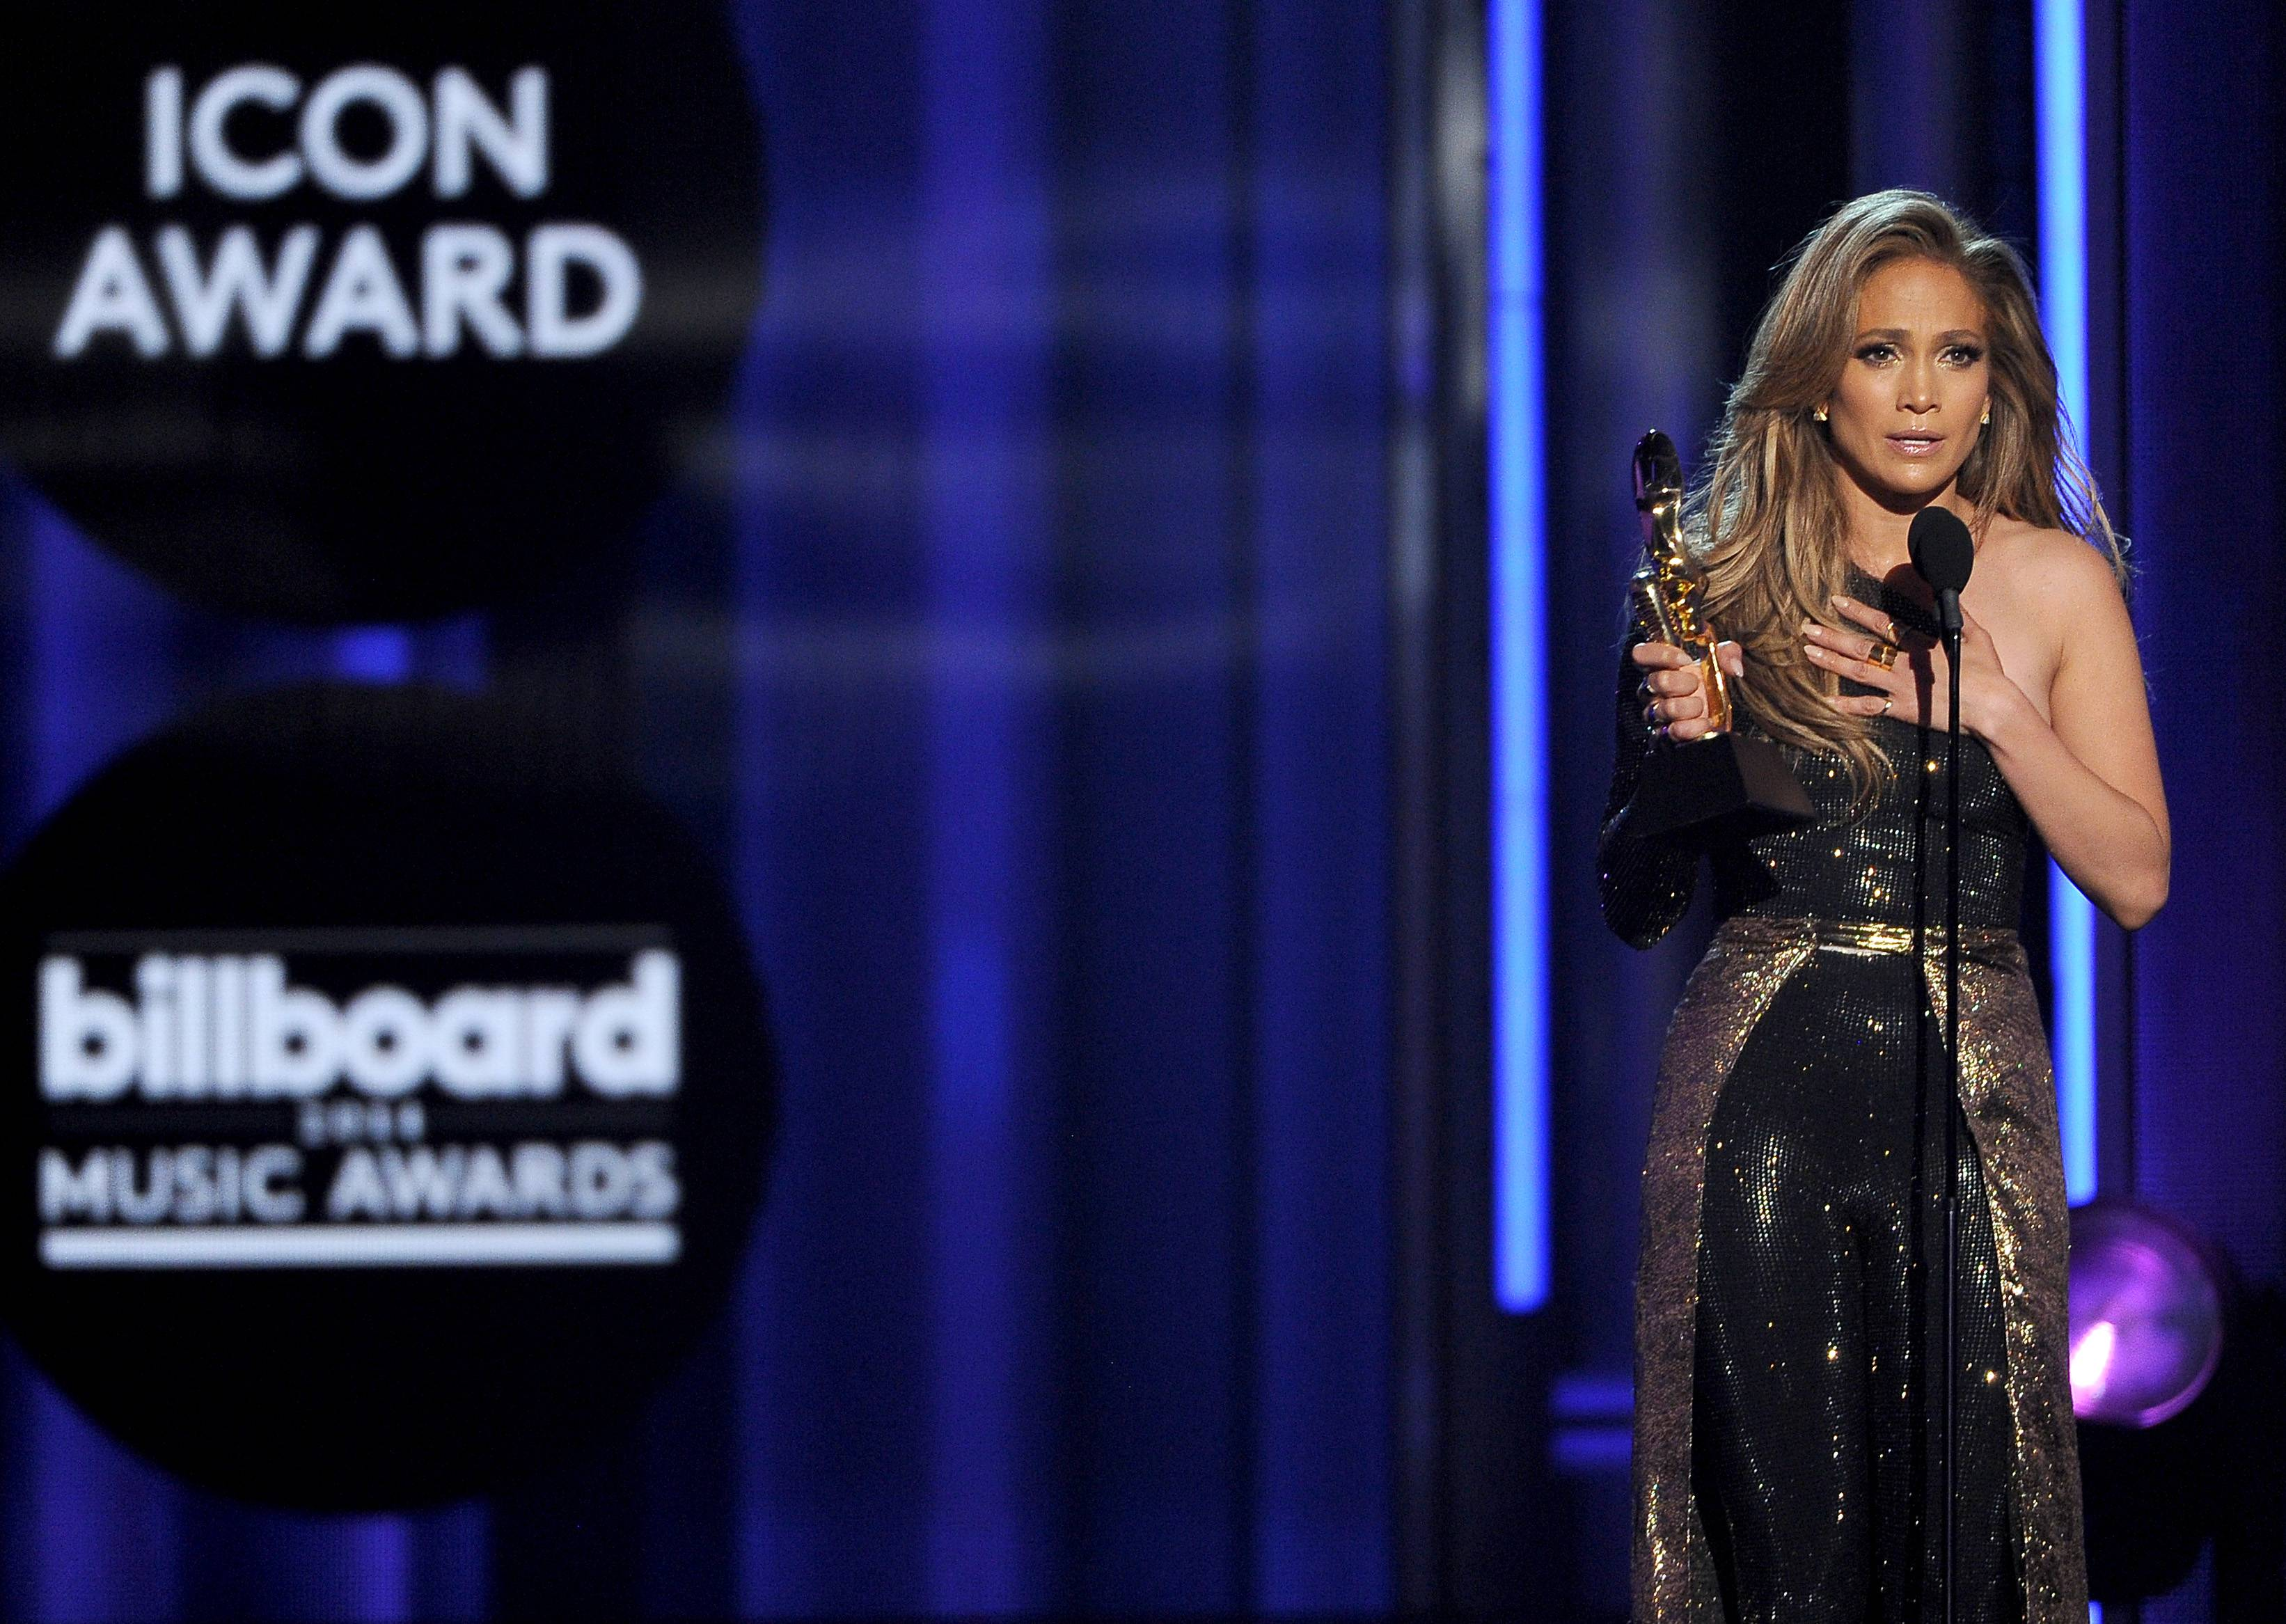 Jennifer Lopez accepts the icon award at the Billboard Music Awards at the MGM Grand Garden Arena on Sunday, May 18, 2014, in Las Vegas.